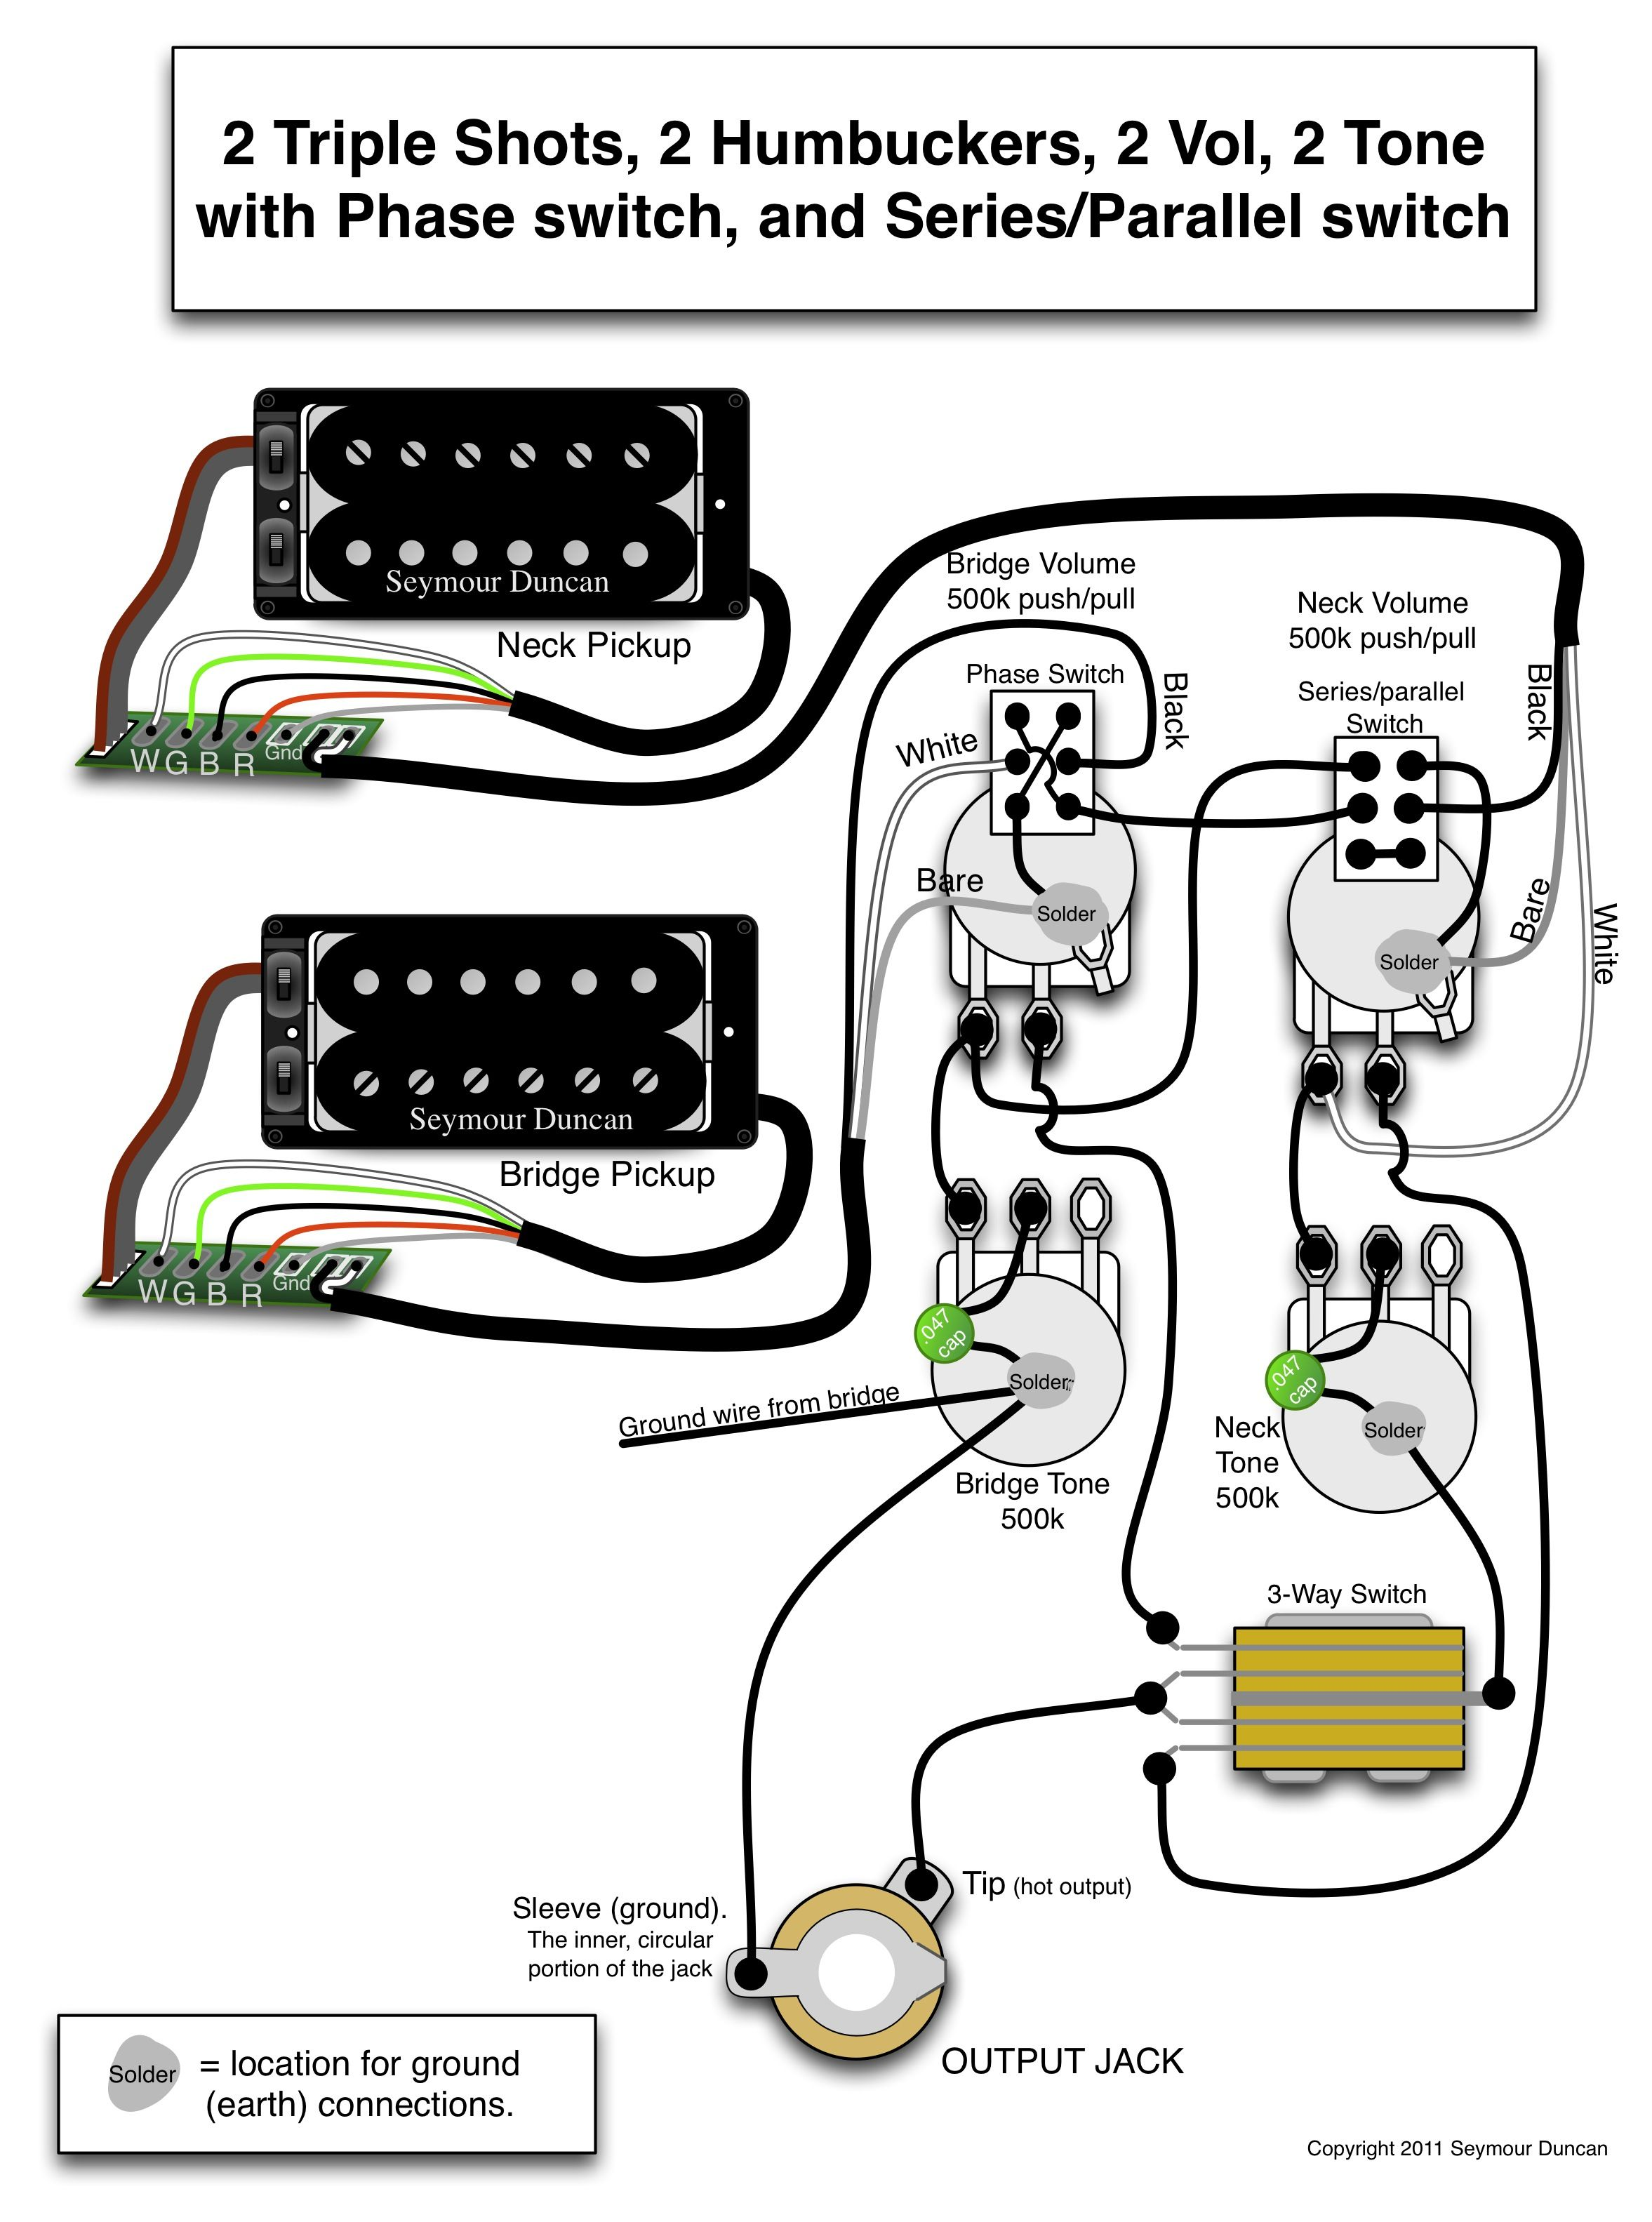 Black Beauty Wiring Diagram Library Gibson Marauder Seymour Duncan 2 Triple Shots Humbuckers Vol